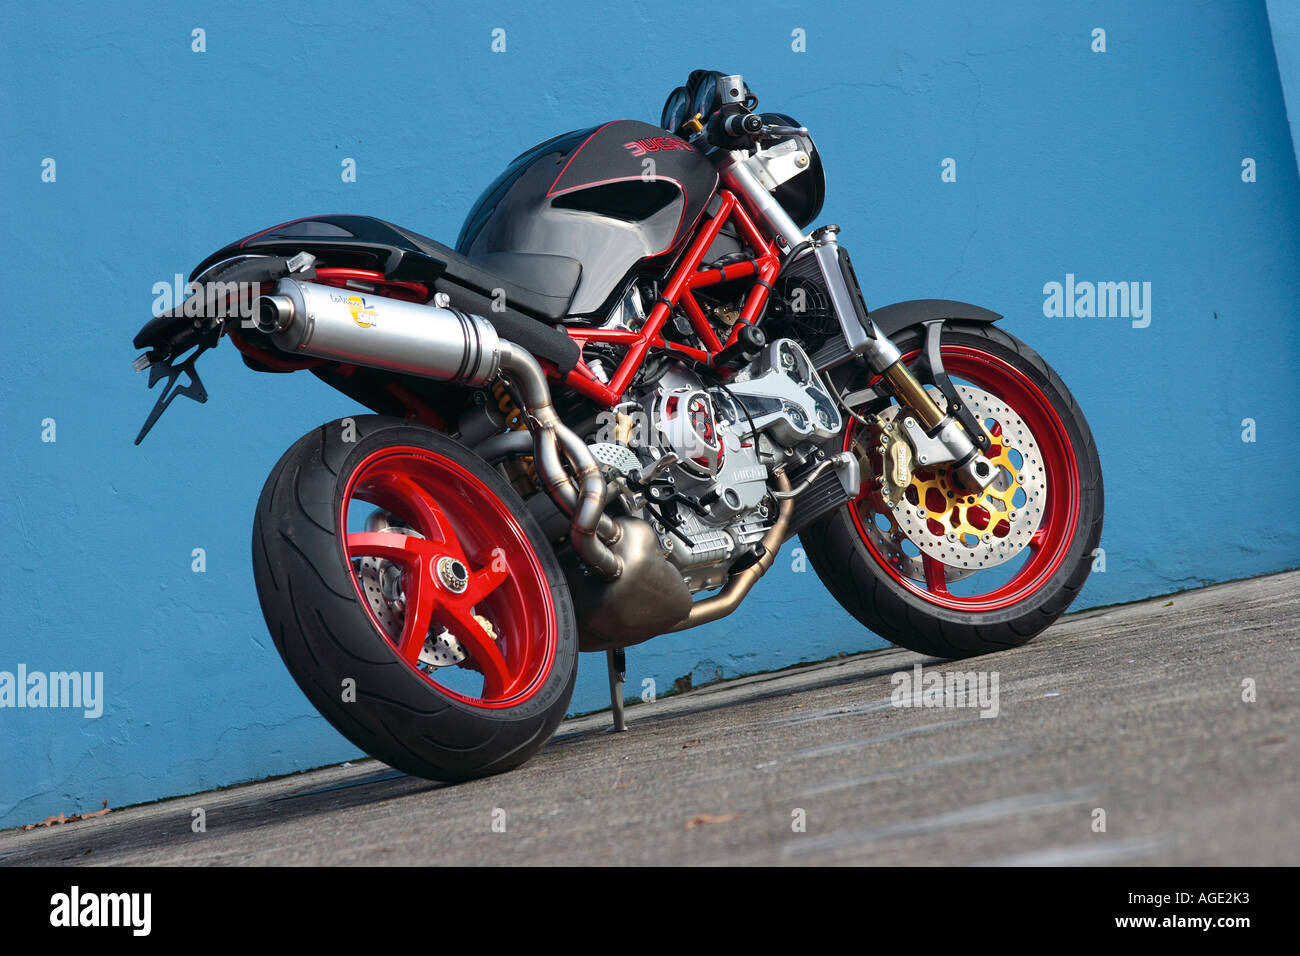 Ducati Monster Special - Stock Image